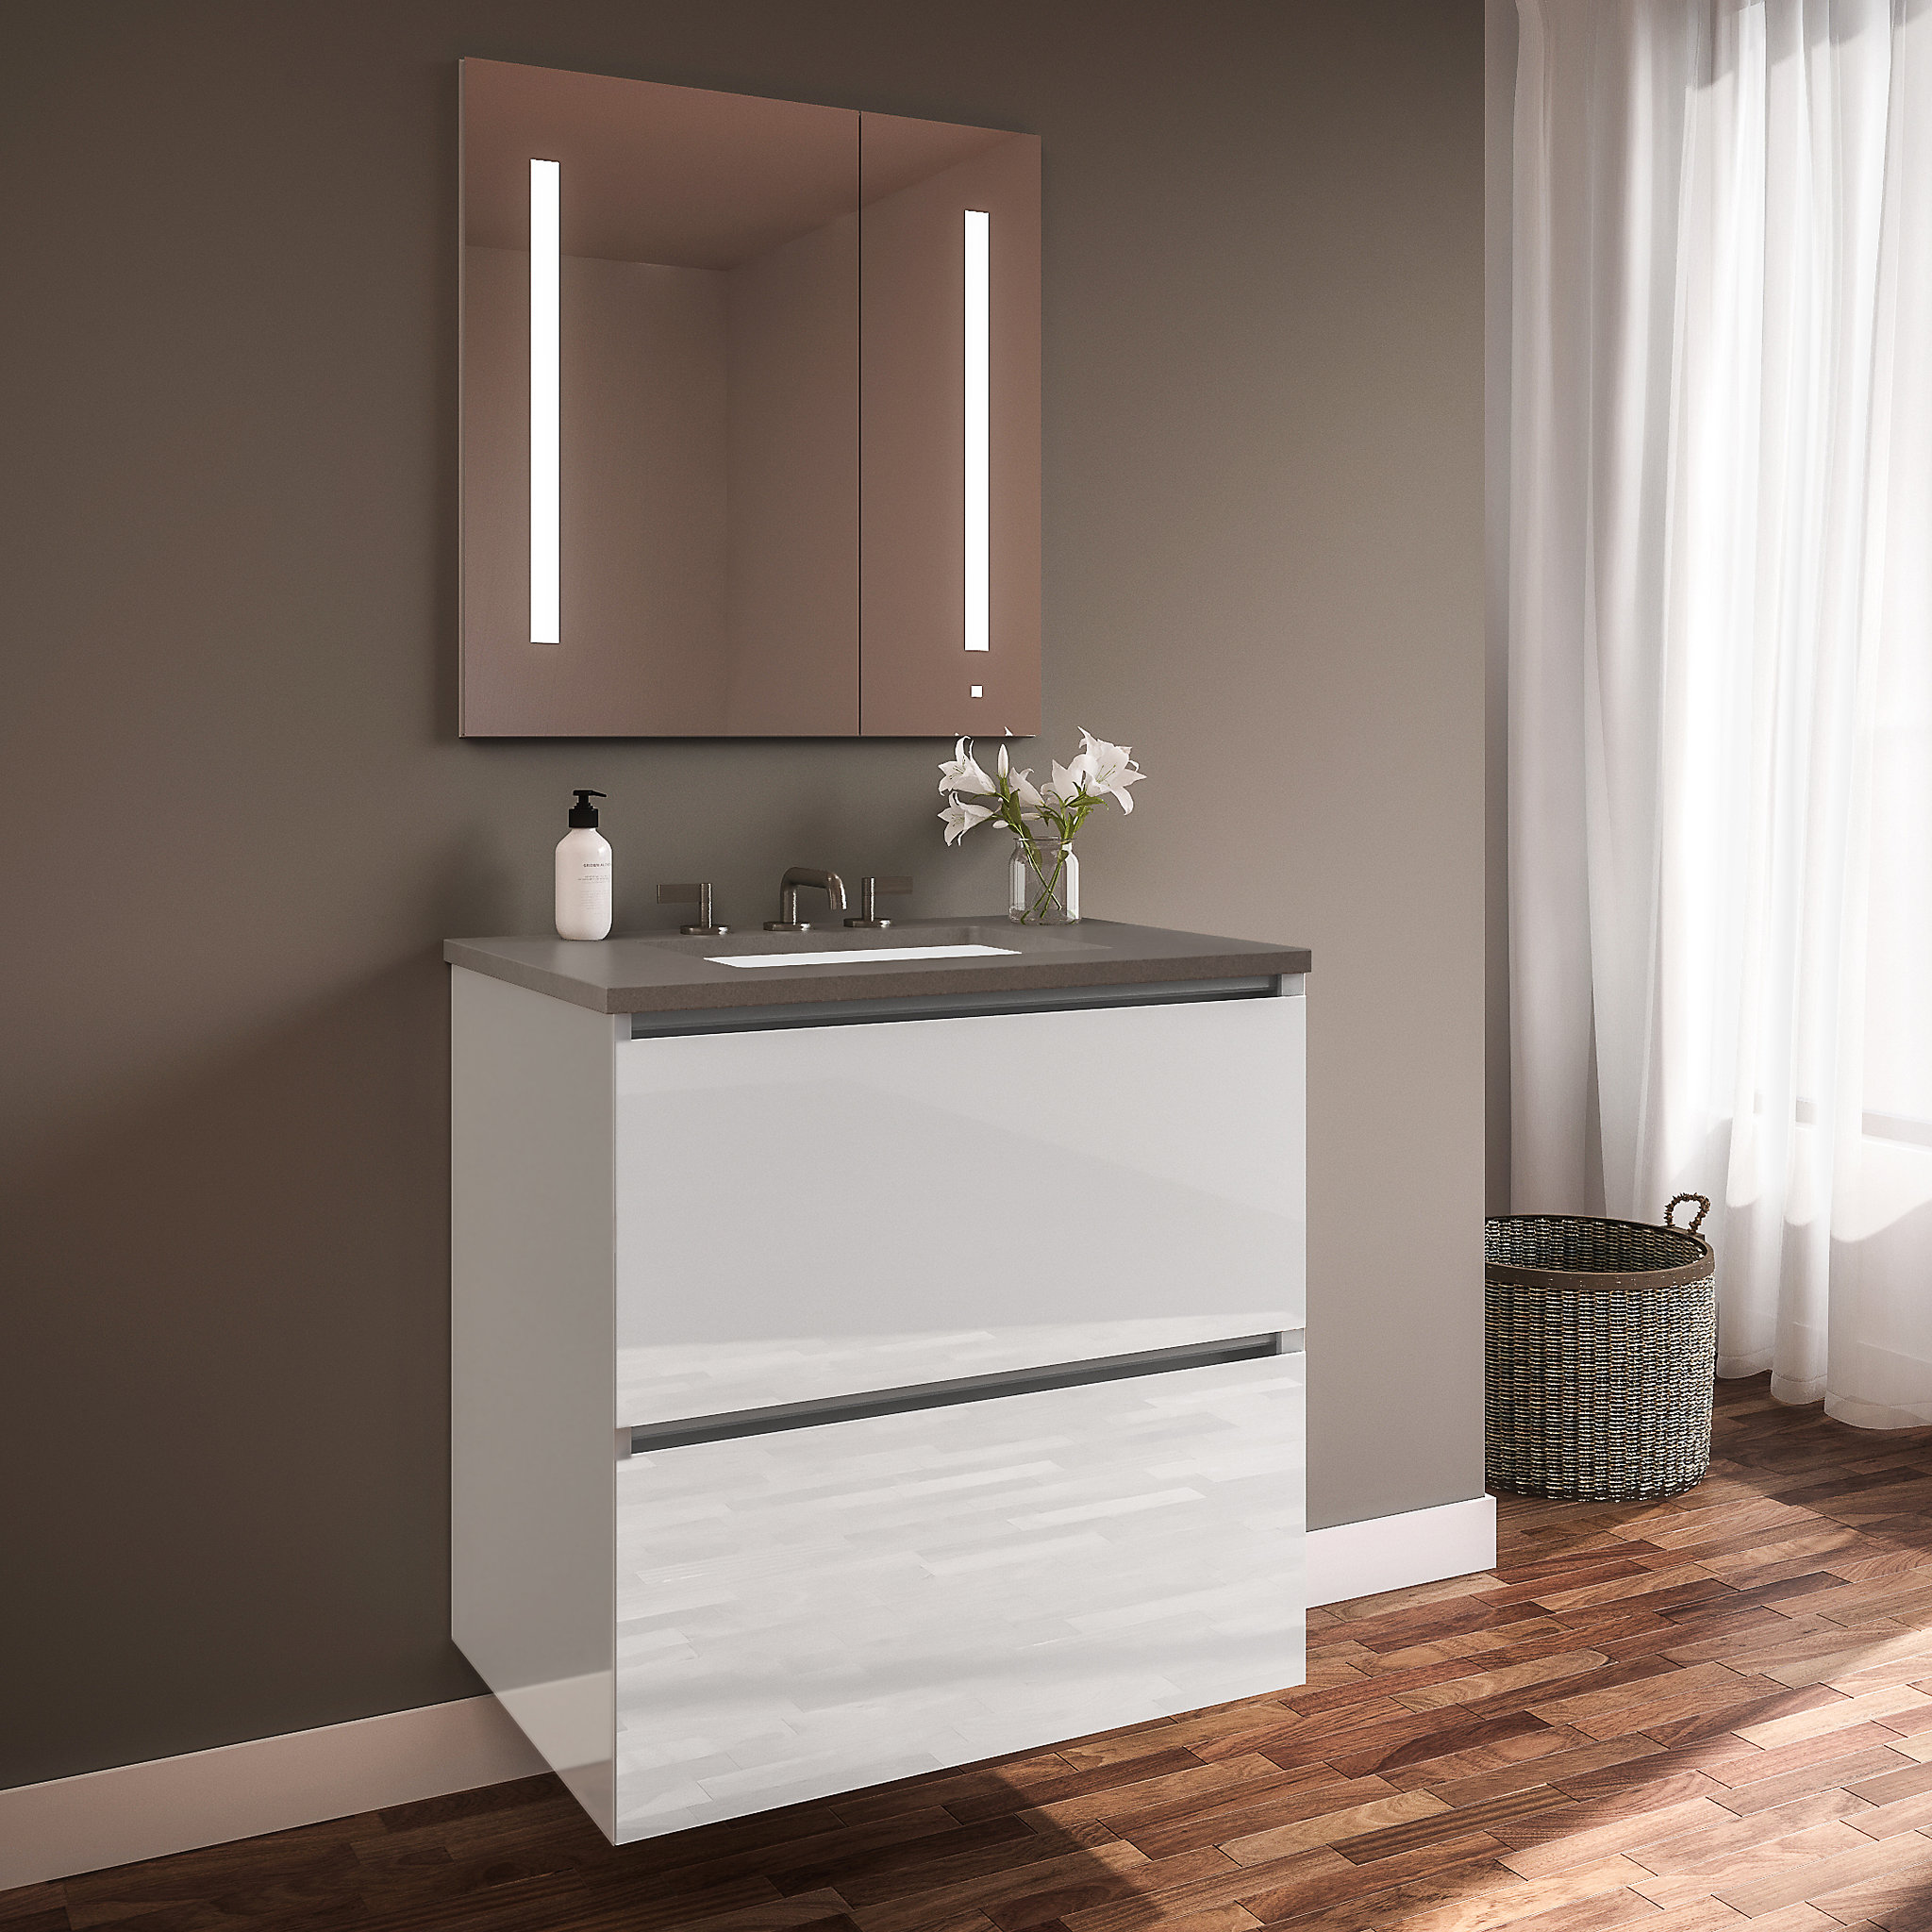 "Robern 24219100NB00002 Curated Cartesian Vanity, 24"" x 15"" x 21"", Two Drawer, White Glass, Plumbing Drawer, Full Drawer, Enginee"